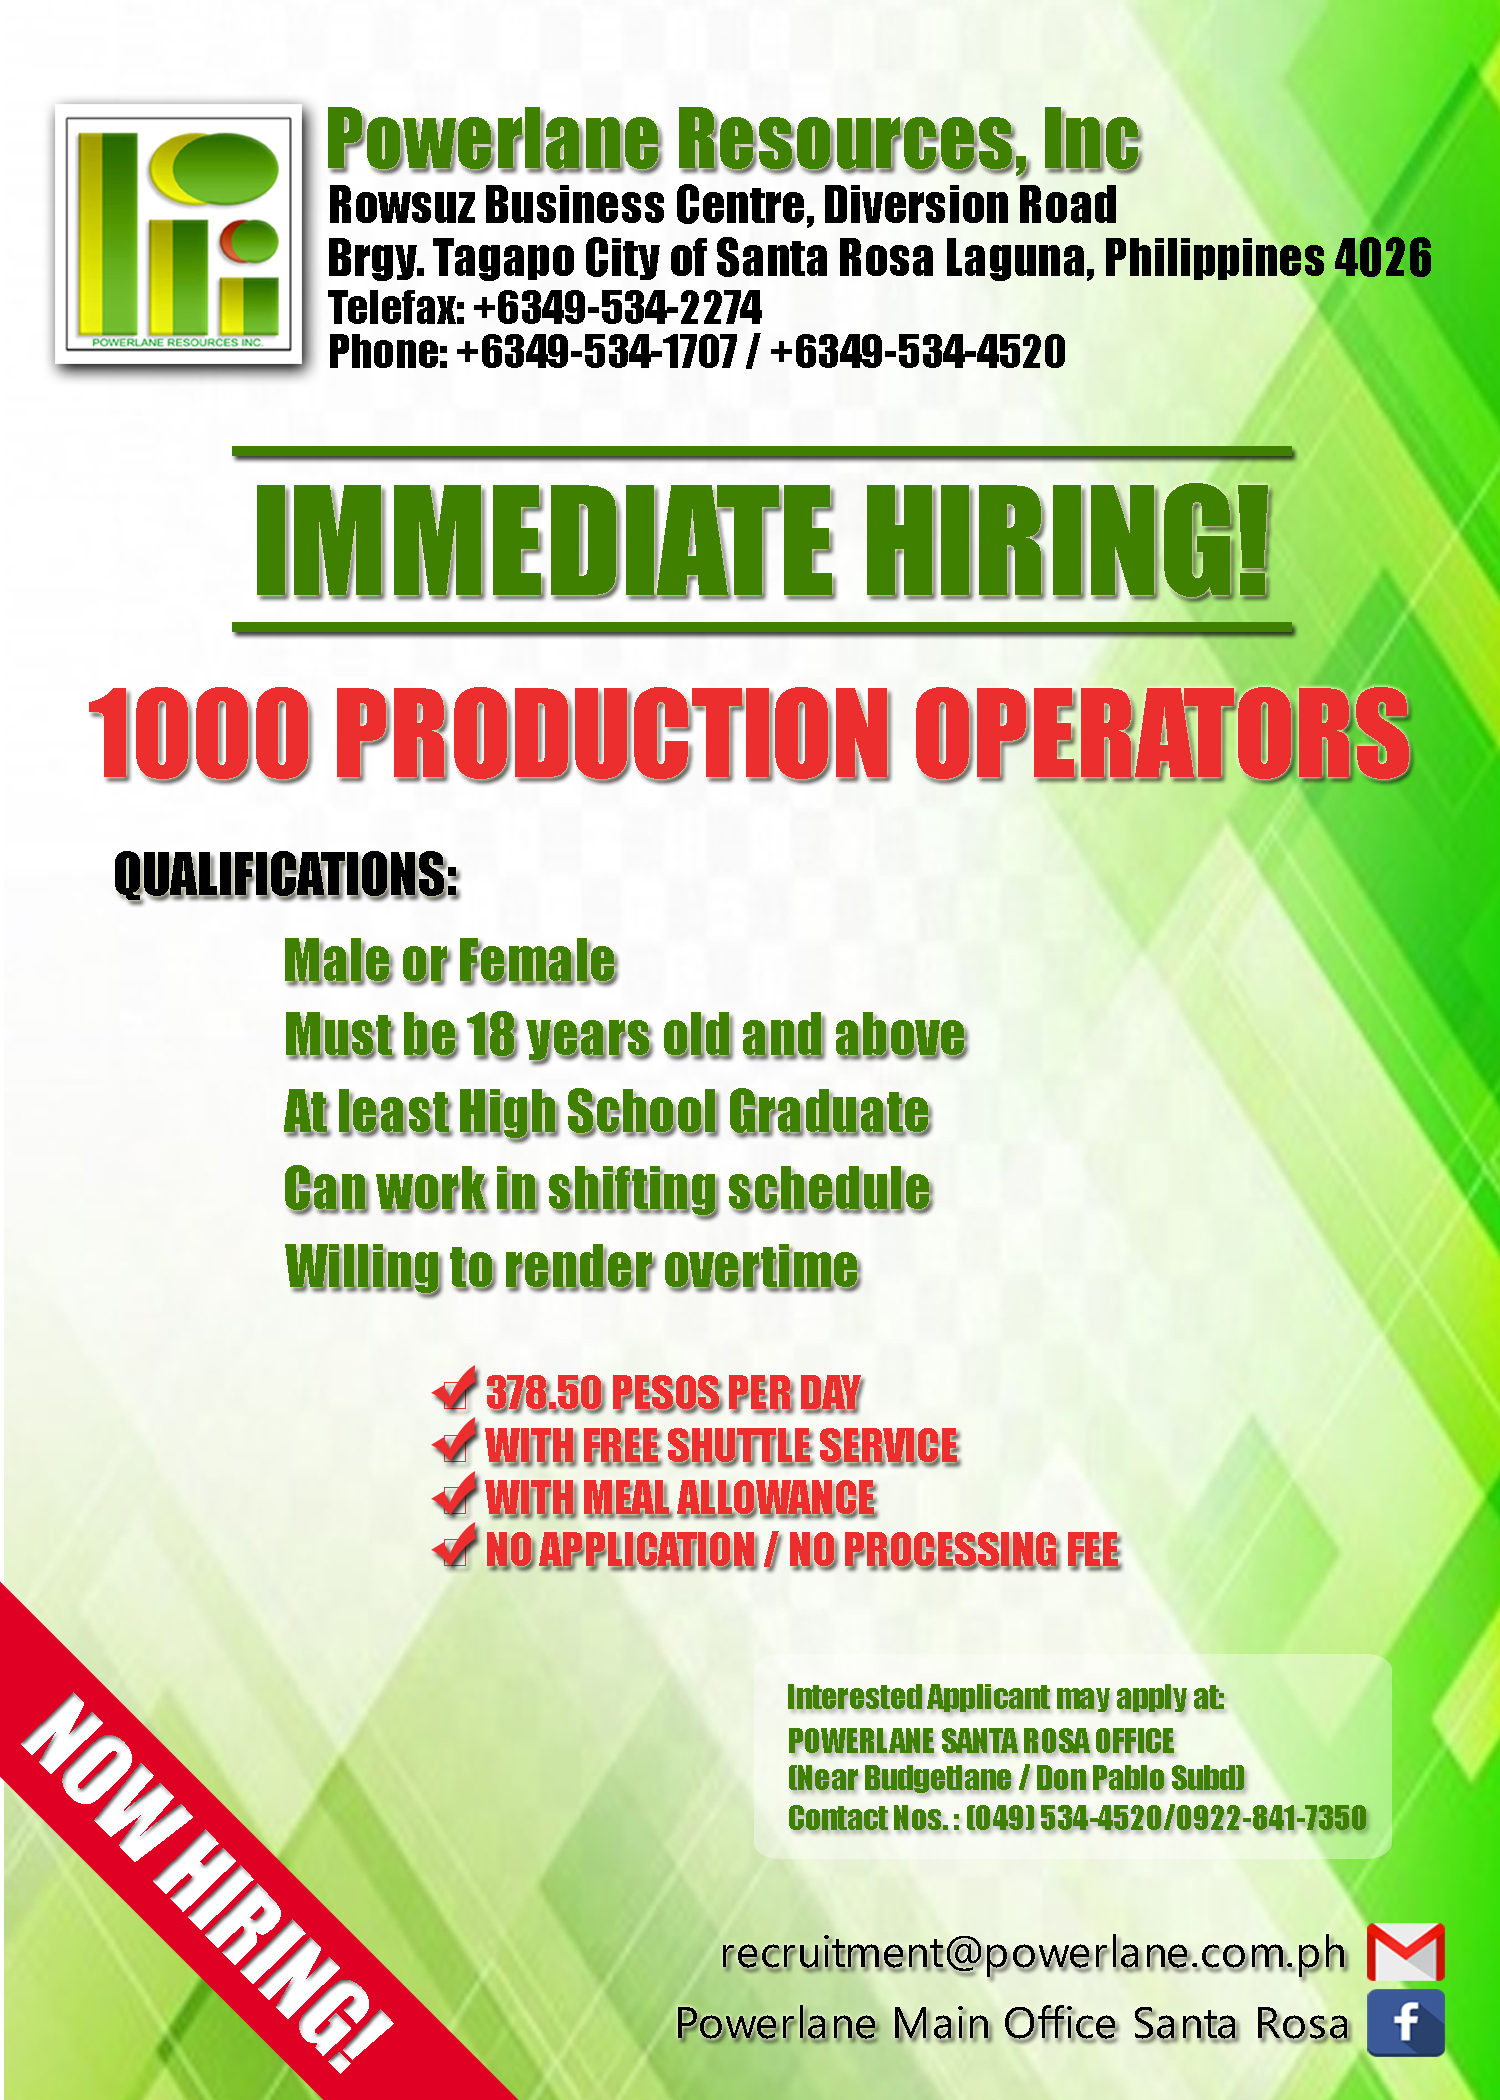 Production Operator from Powerlane Resources Inc.